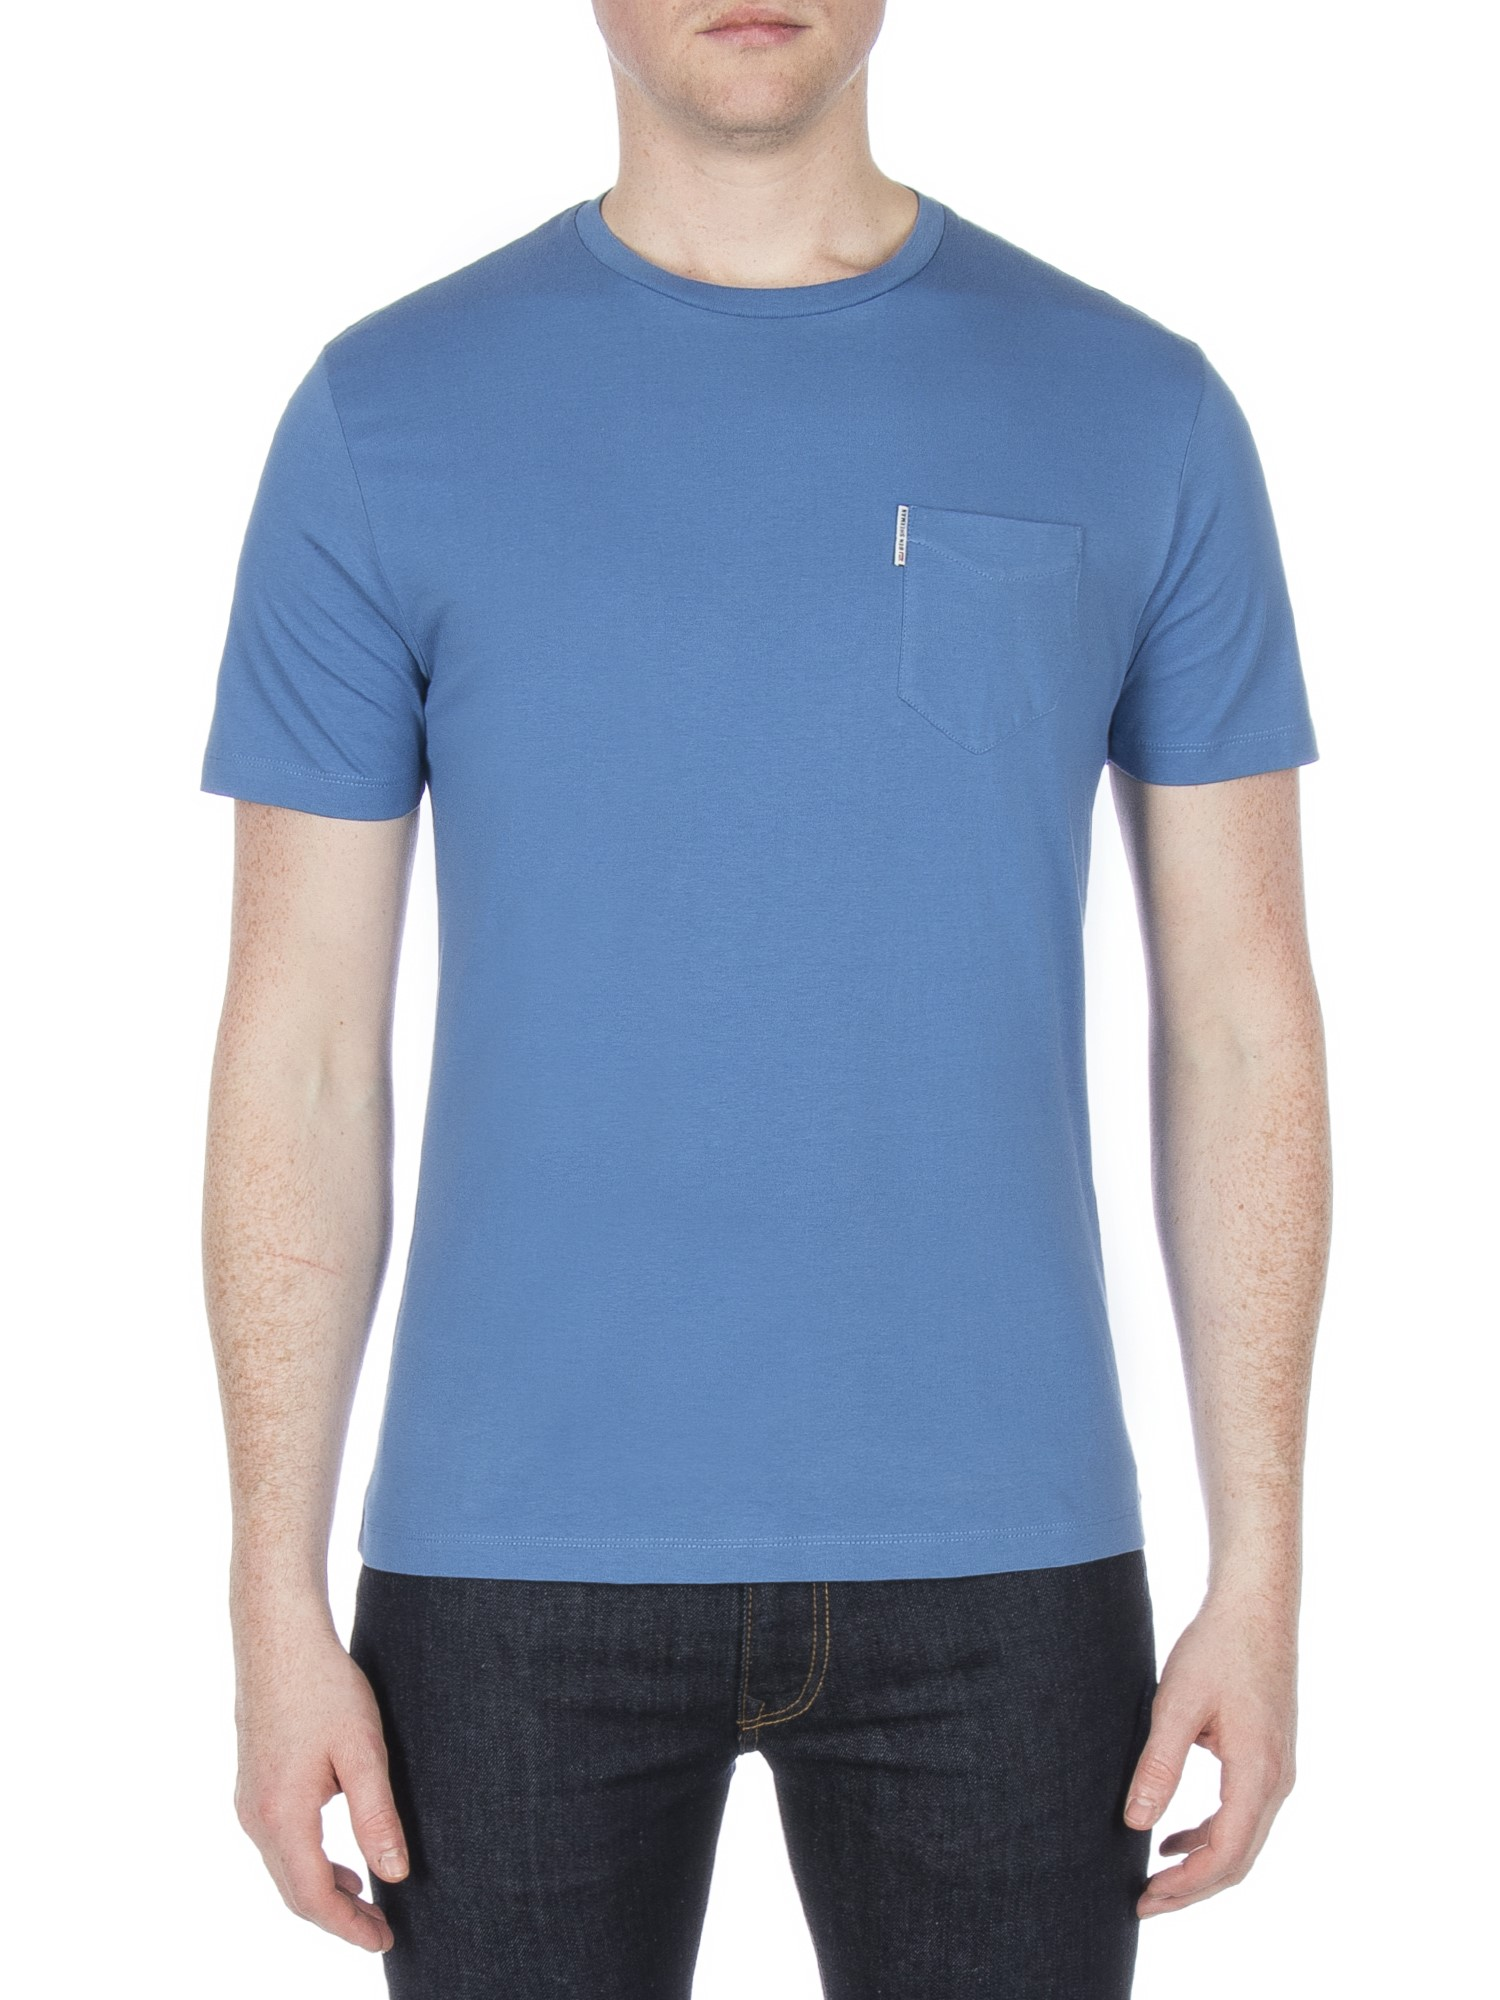 Ben Sherman Federal Blue Crew Neck T-Shirt